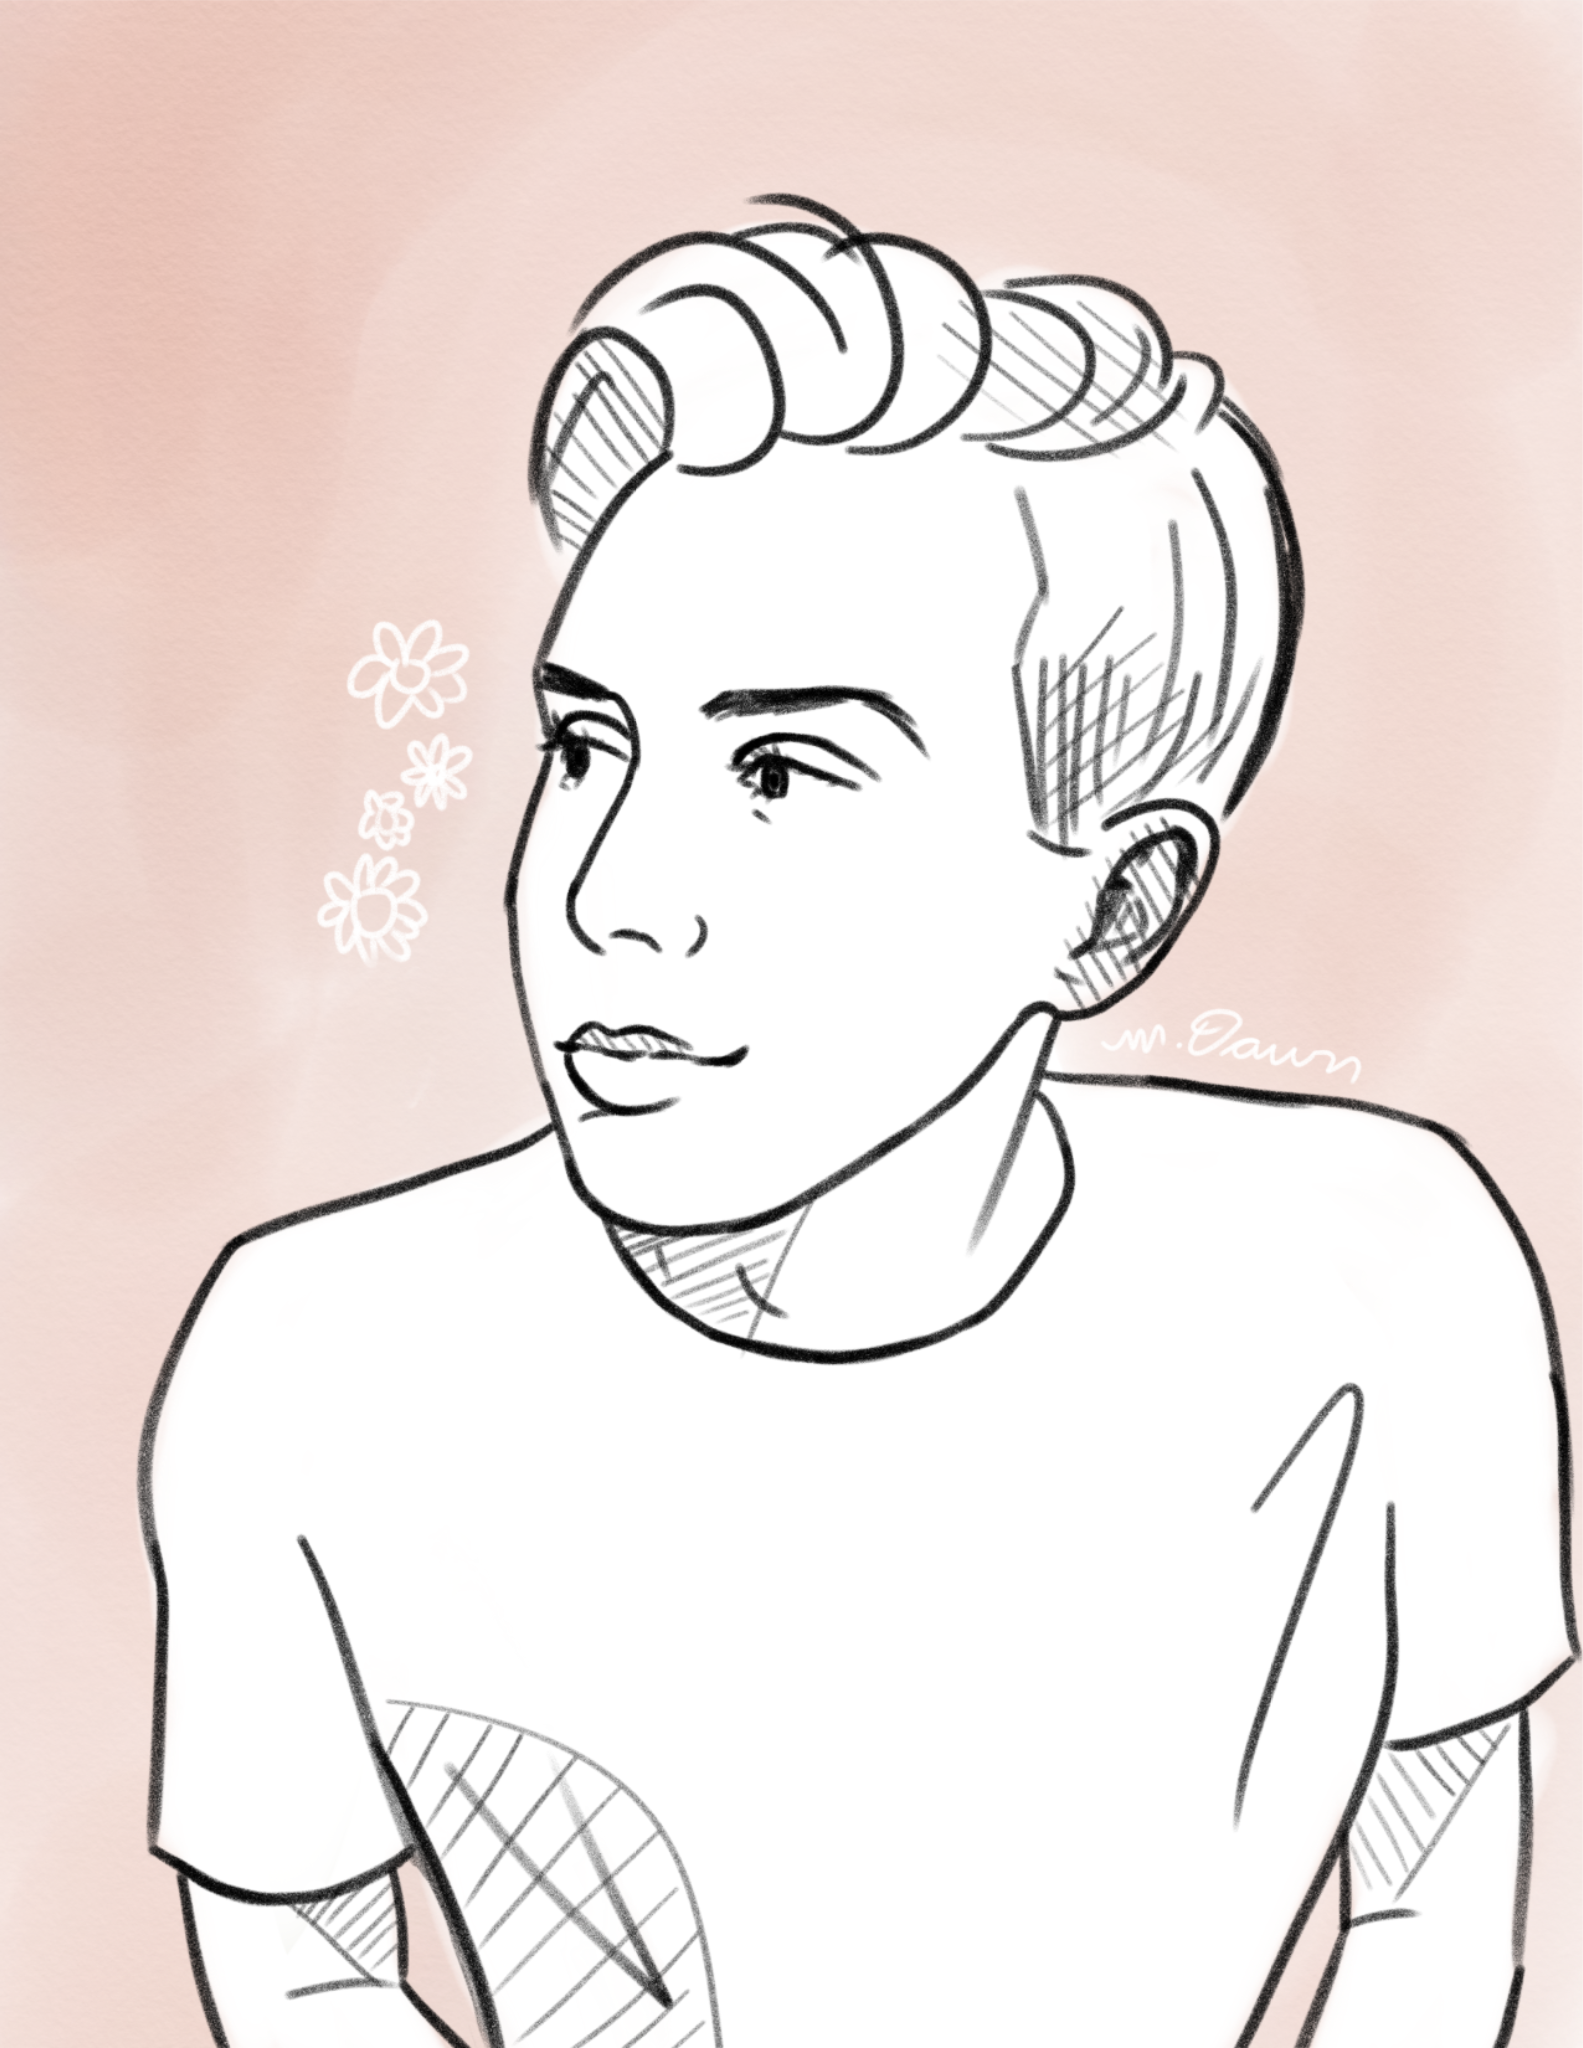 Phil Lester By Drawingdawnart Tumblr And Instagram Digital Stamps Dan And Phil Coloring Pages